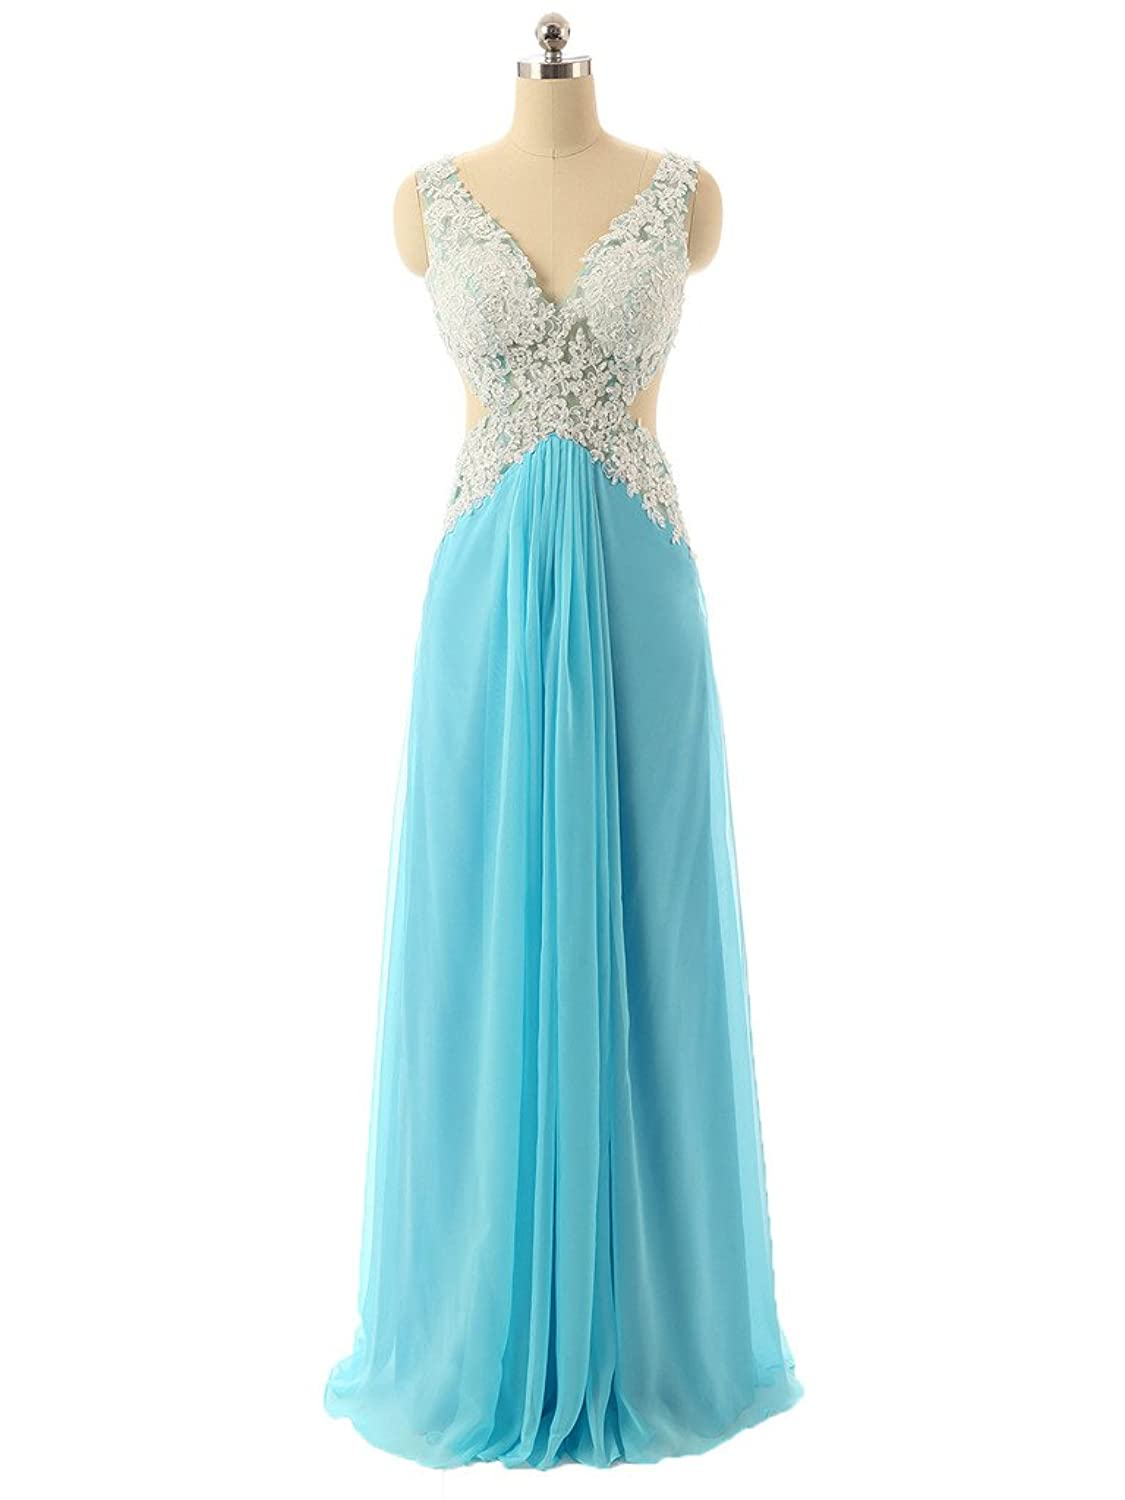 Fanmu Womens V-Neck Open Back Lace Chiffon Event Dress Prom Evening Gown